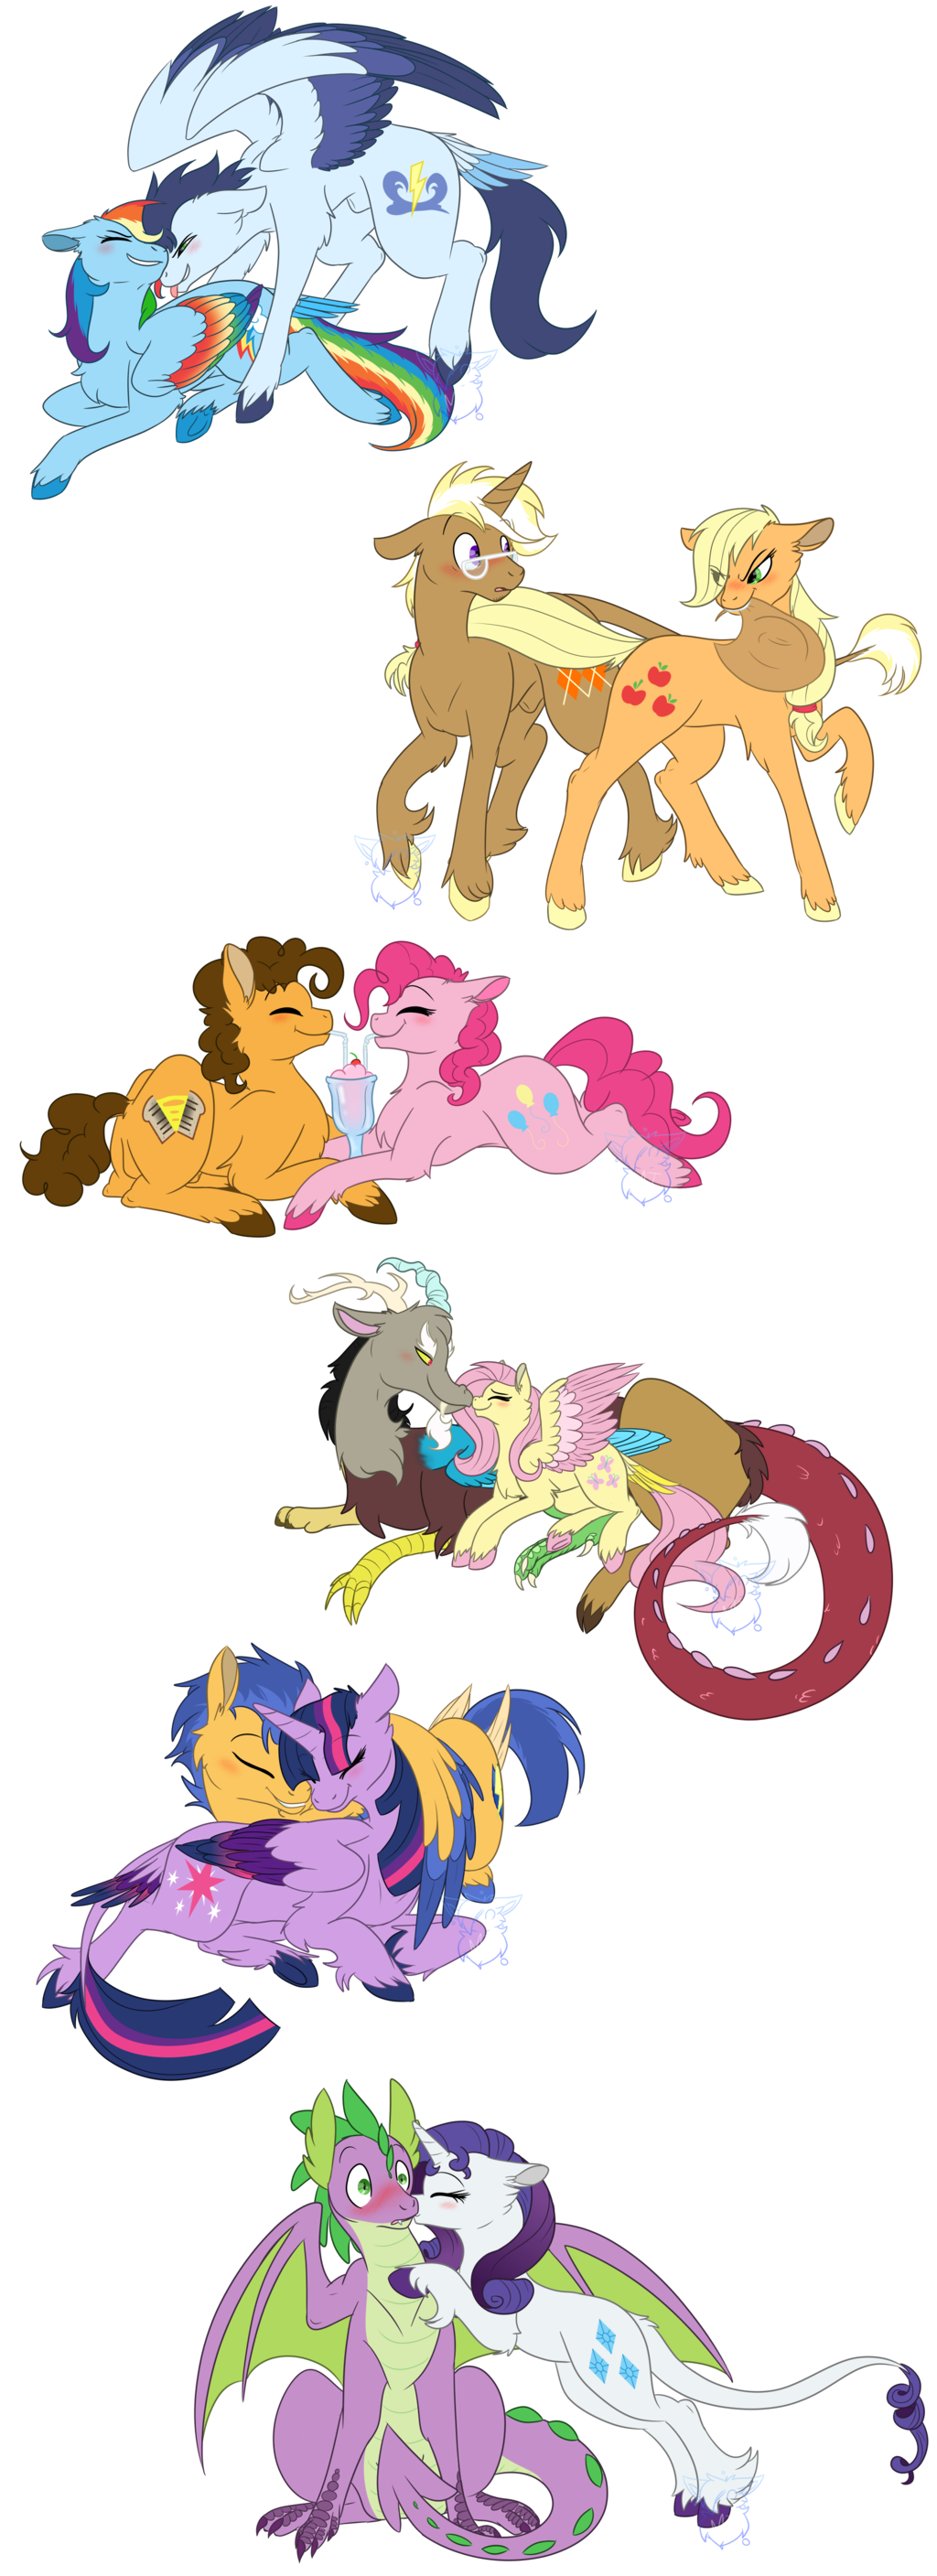 Image tirek throws twilight towards the mountain s4e26 png my - I Don T Ship Cheese X Pinkie Trender X Applejack Or Flutter X Discord Or Twilight X Flash But They Re All So Adorable